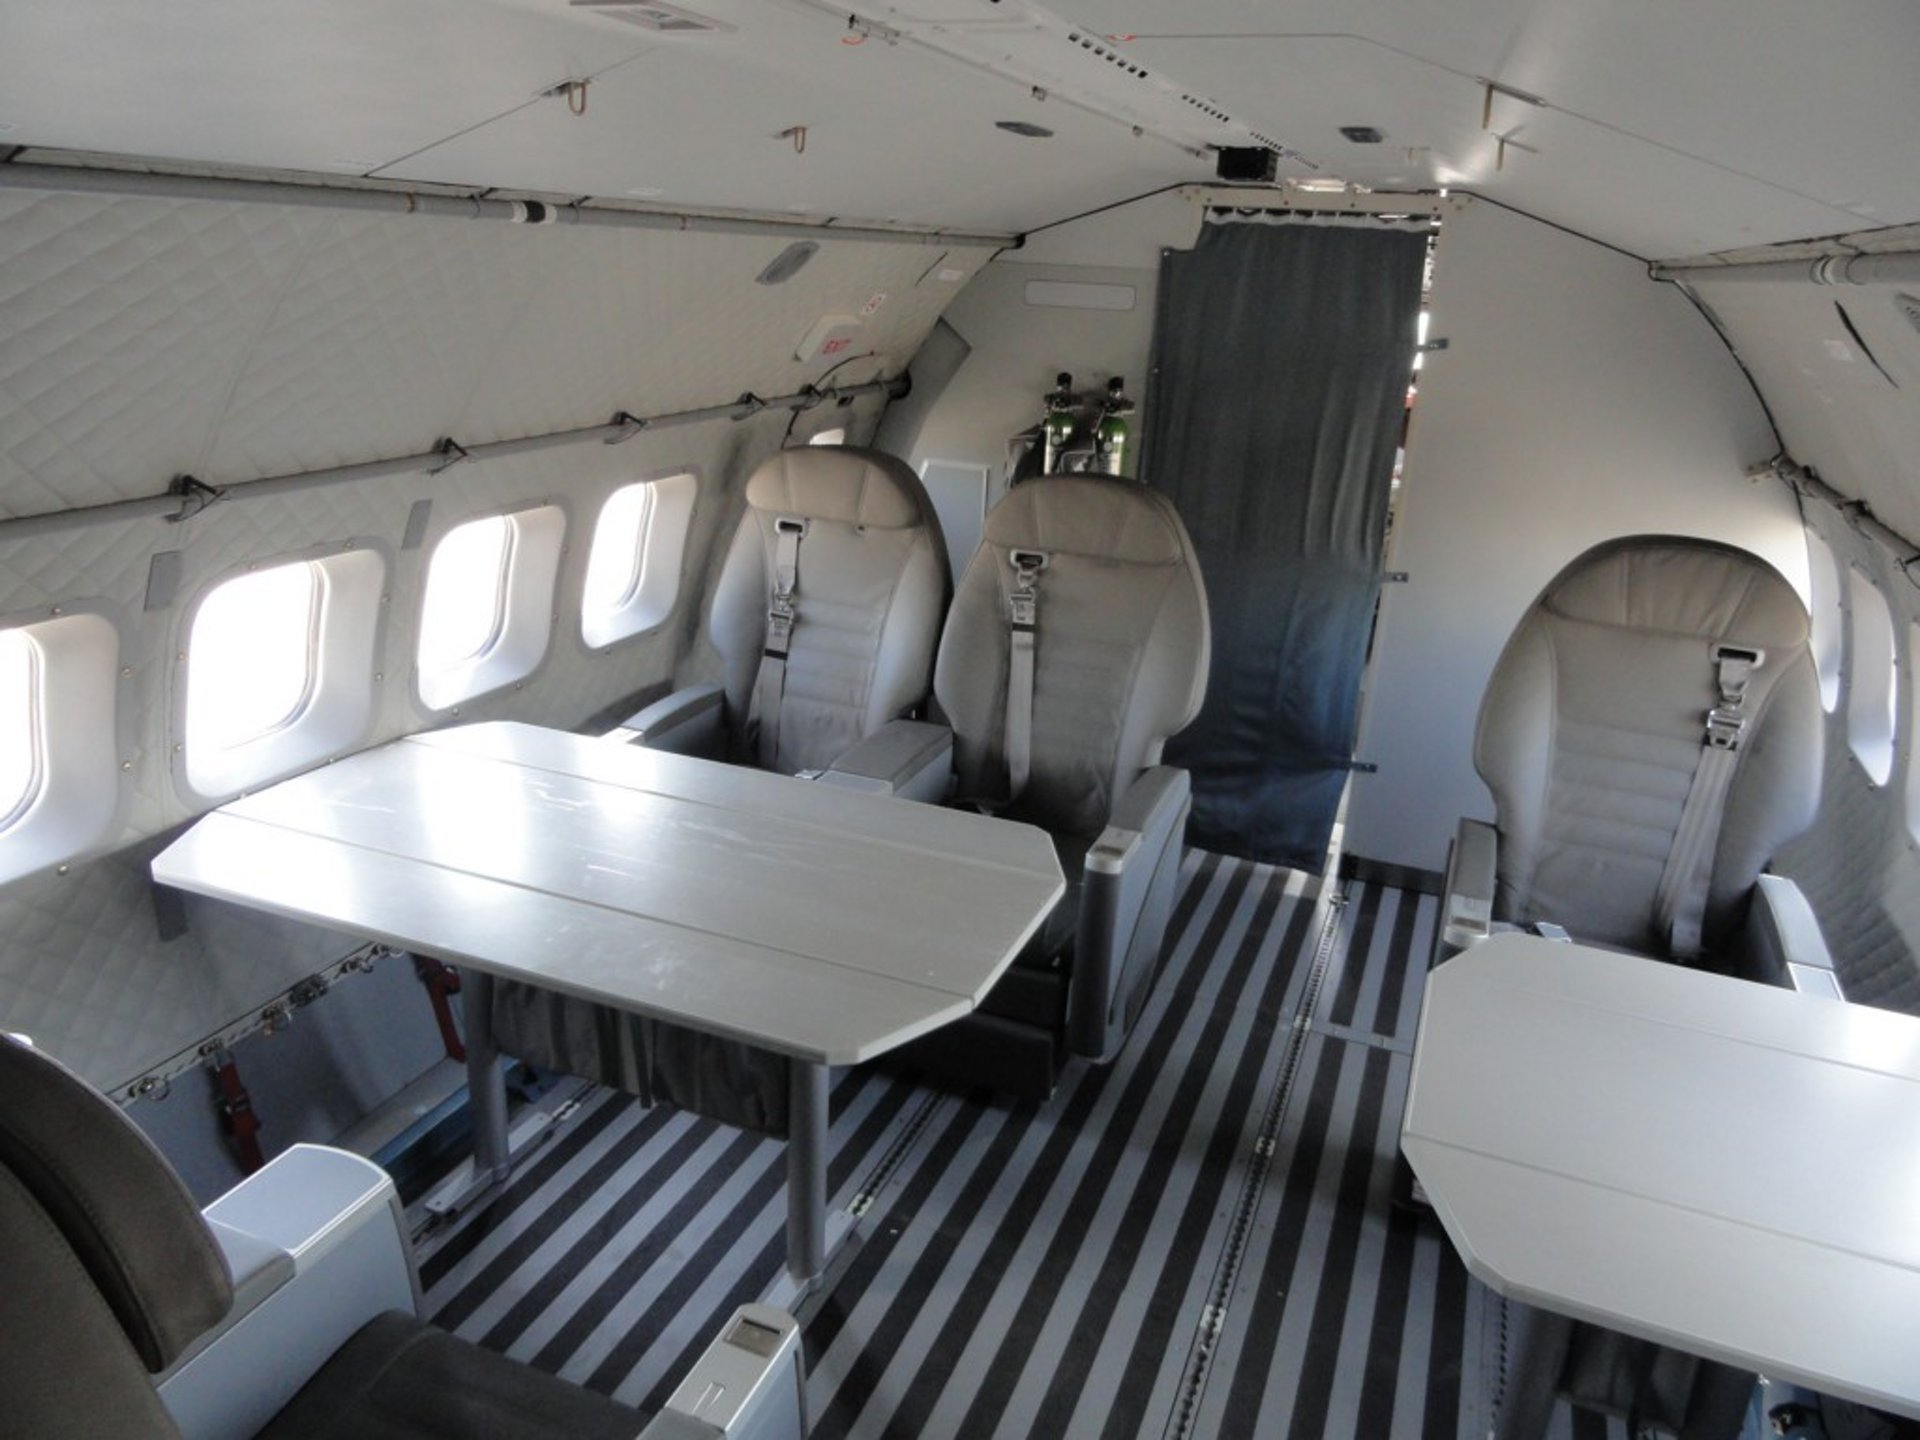 A view inside an Airbus C295 cabin outfitted for VIP transport missions.